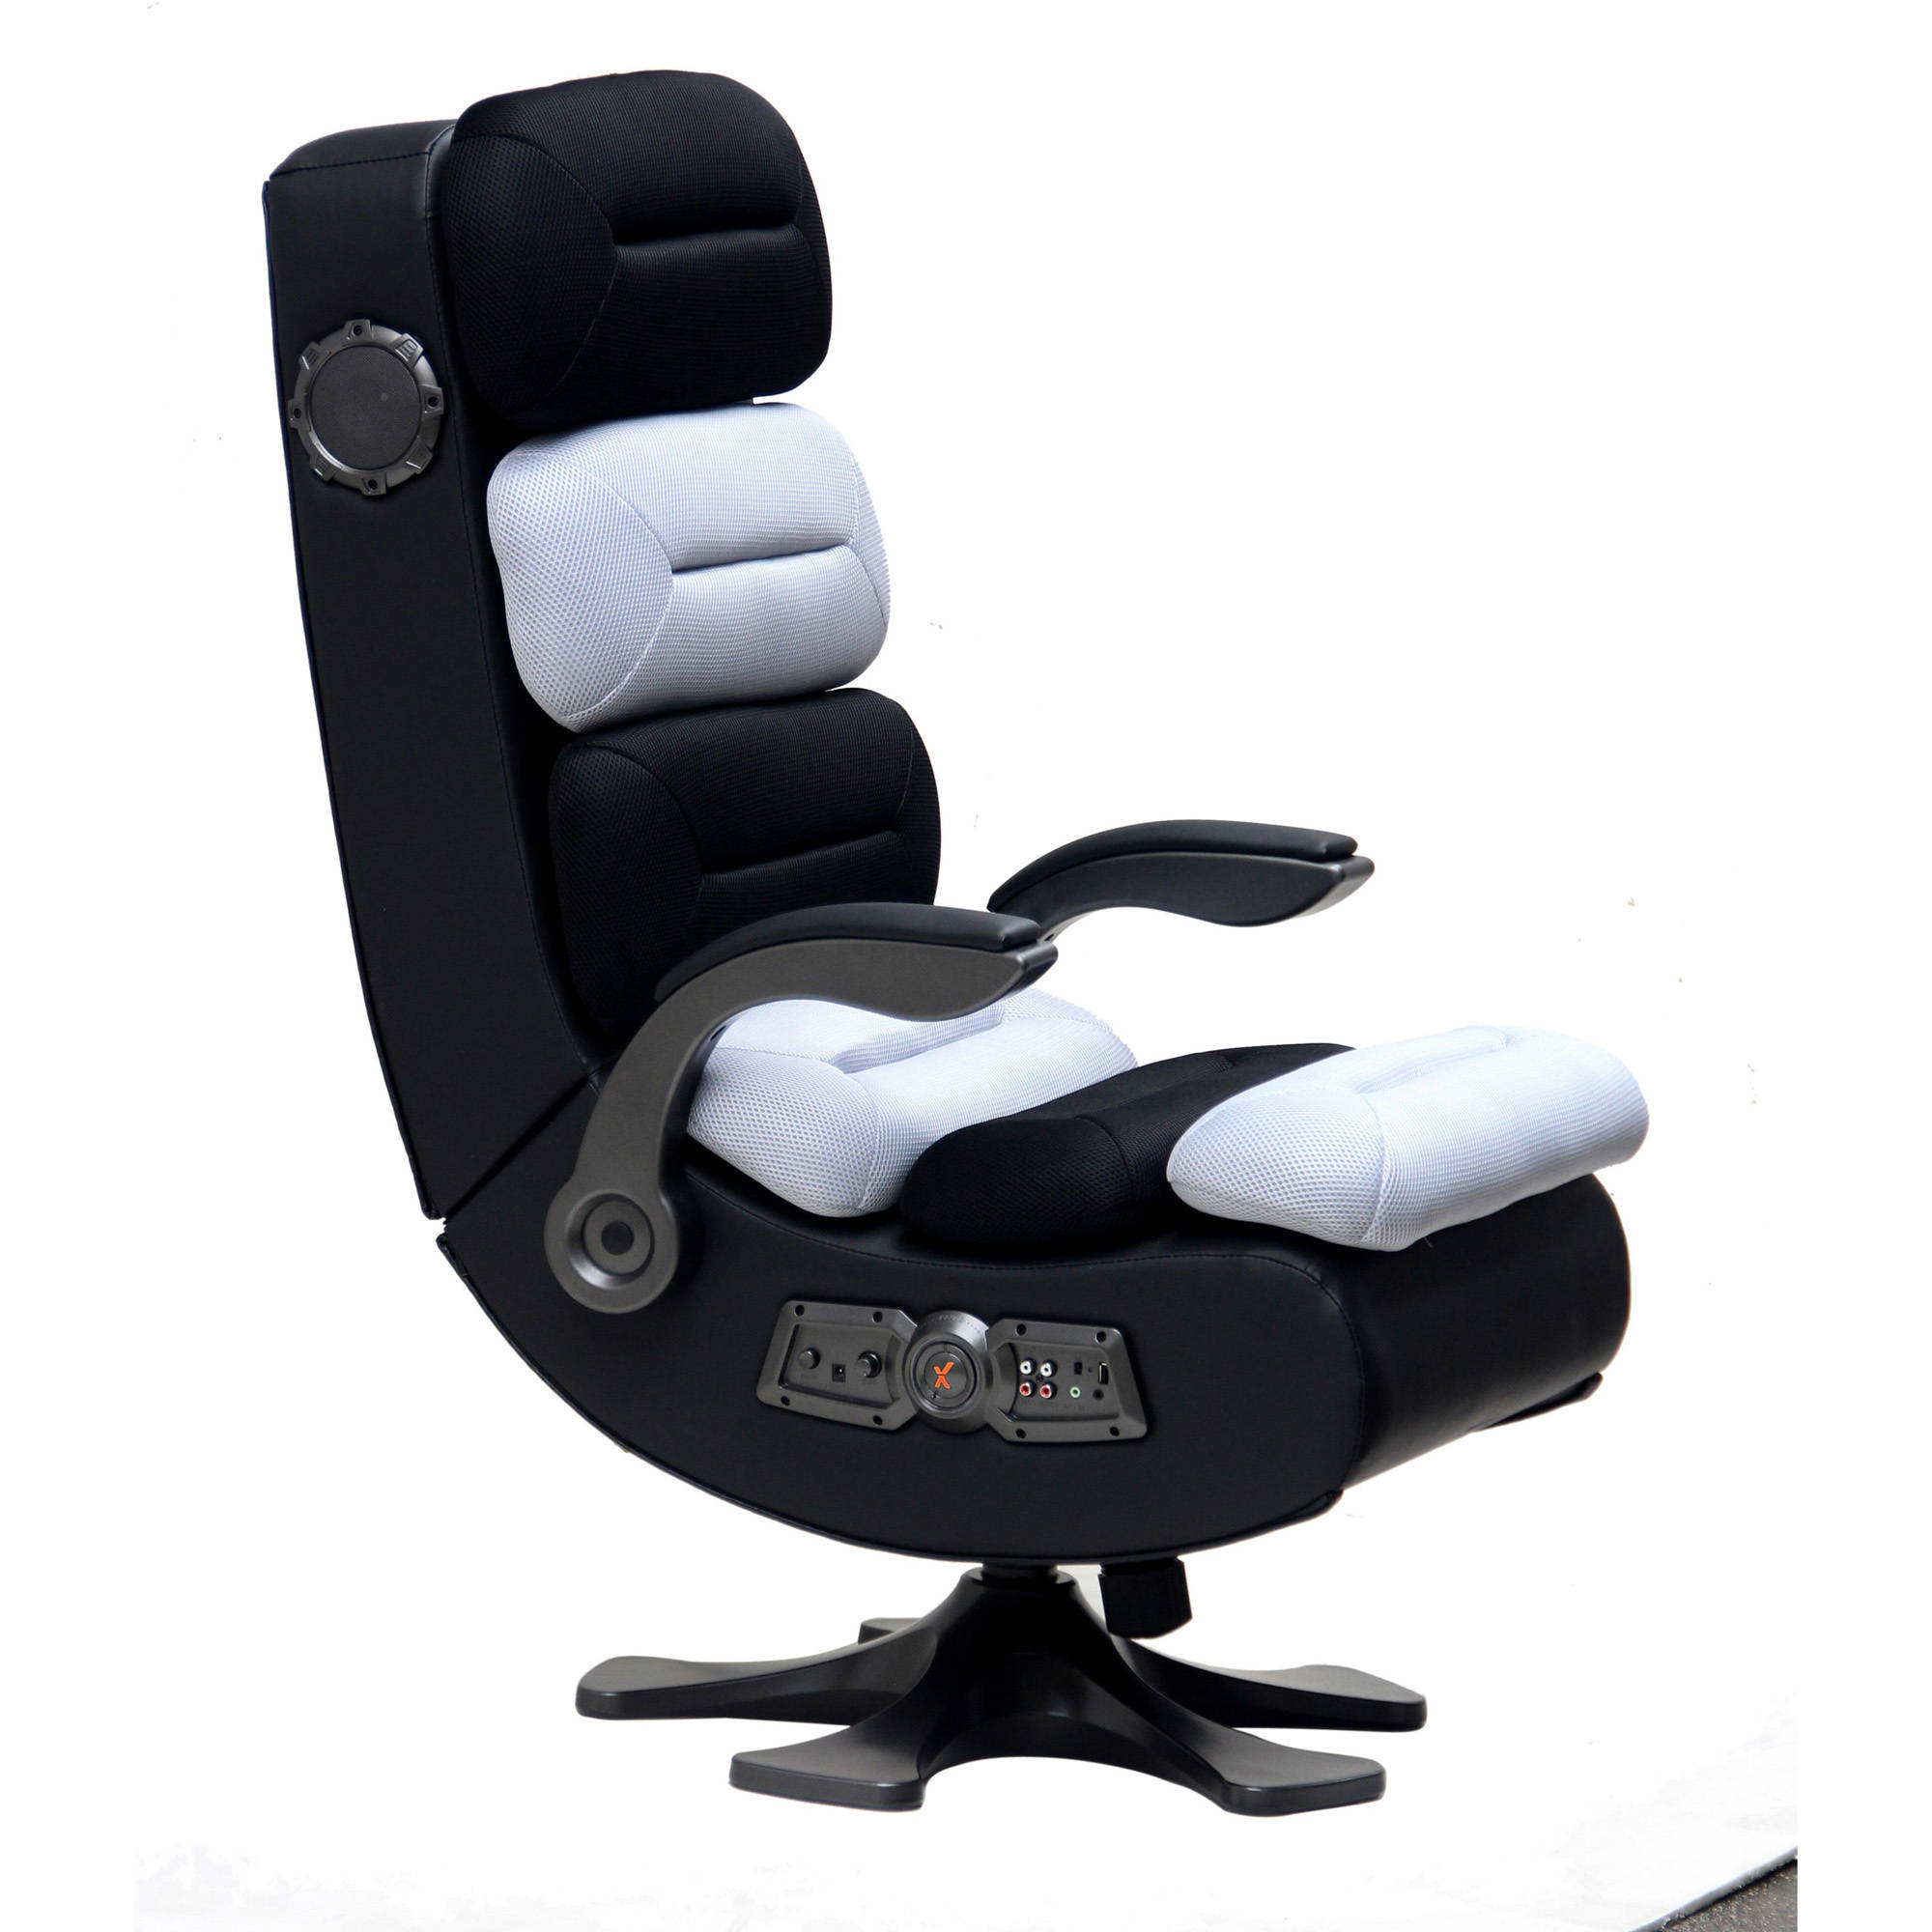 X Rocker Pro Series II 2.1 Wireless Bluetooth Audio Chair, Black/Platinum